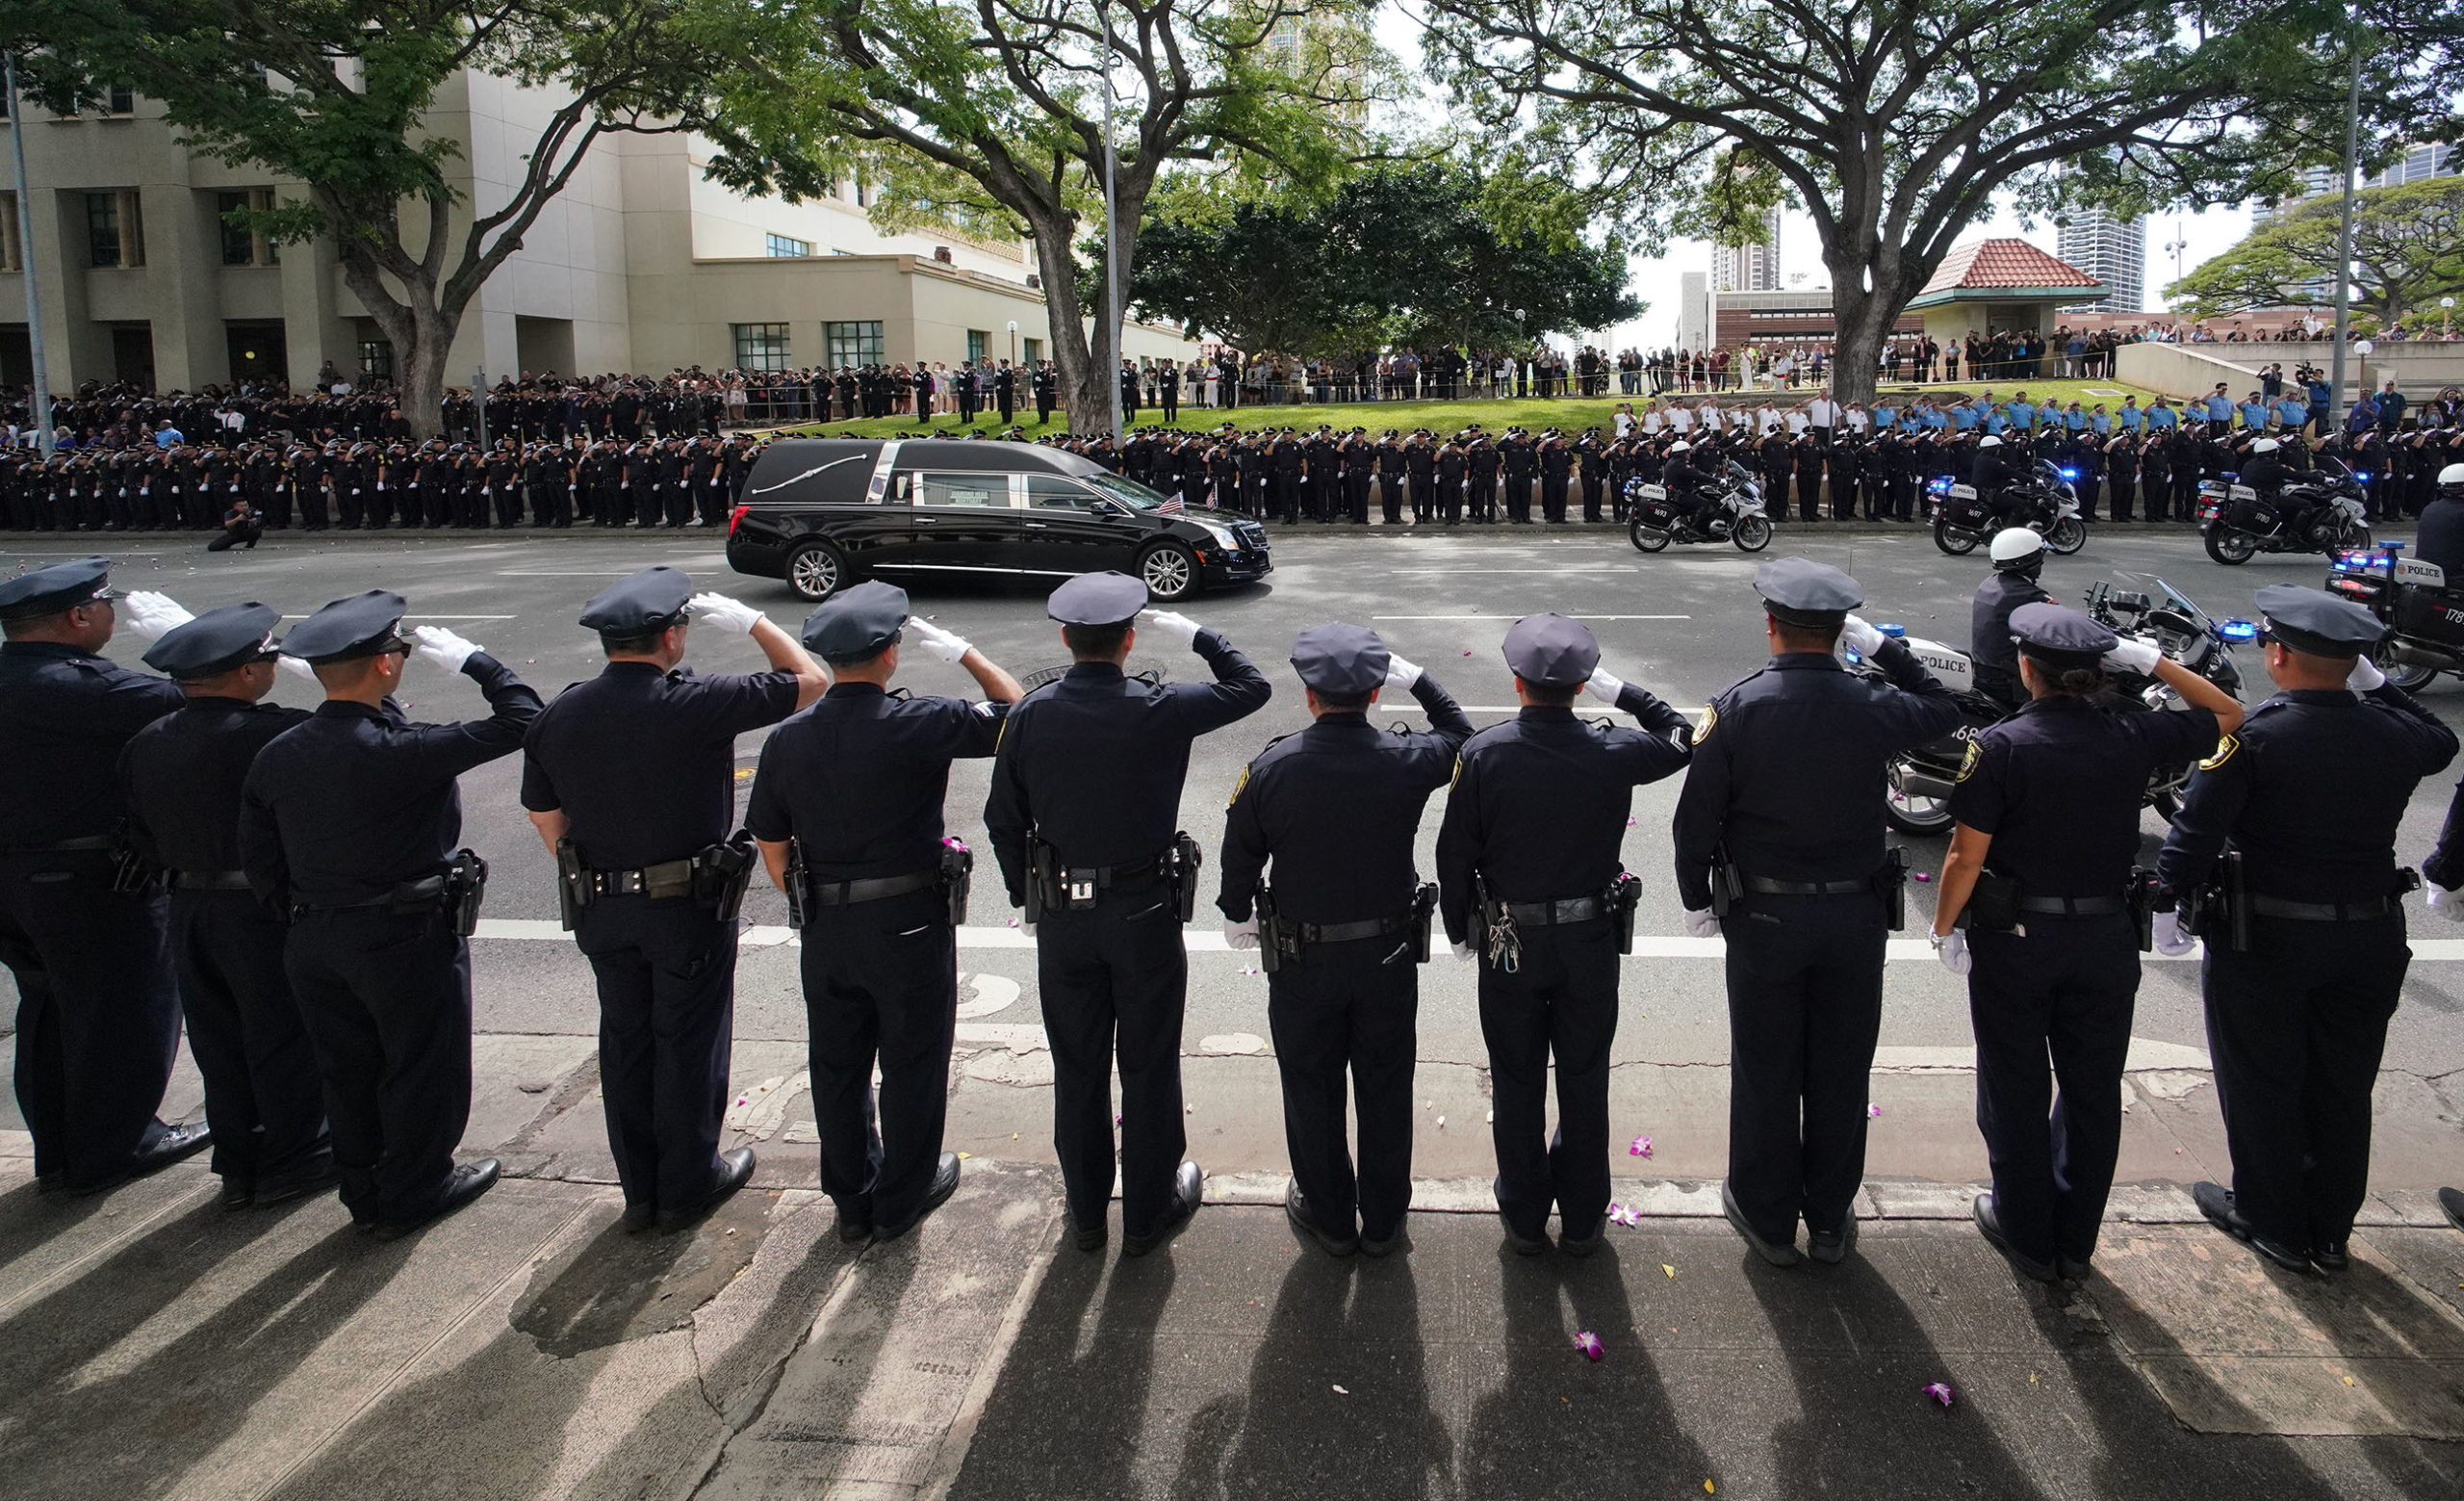 <p>Honolulu police officers saluted the hearse as it drove by the crowd on Beretania Street in front of HPD headquarters. The crowd mostly watched in silence.</p>